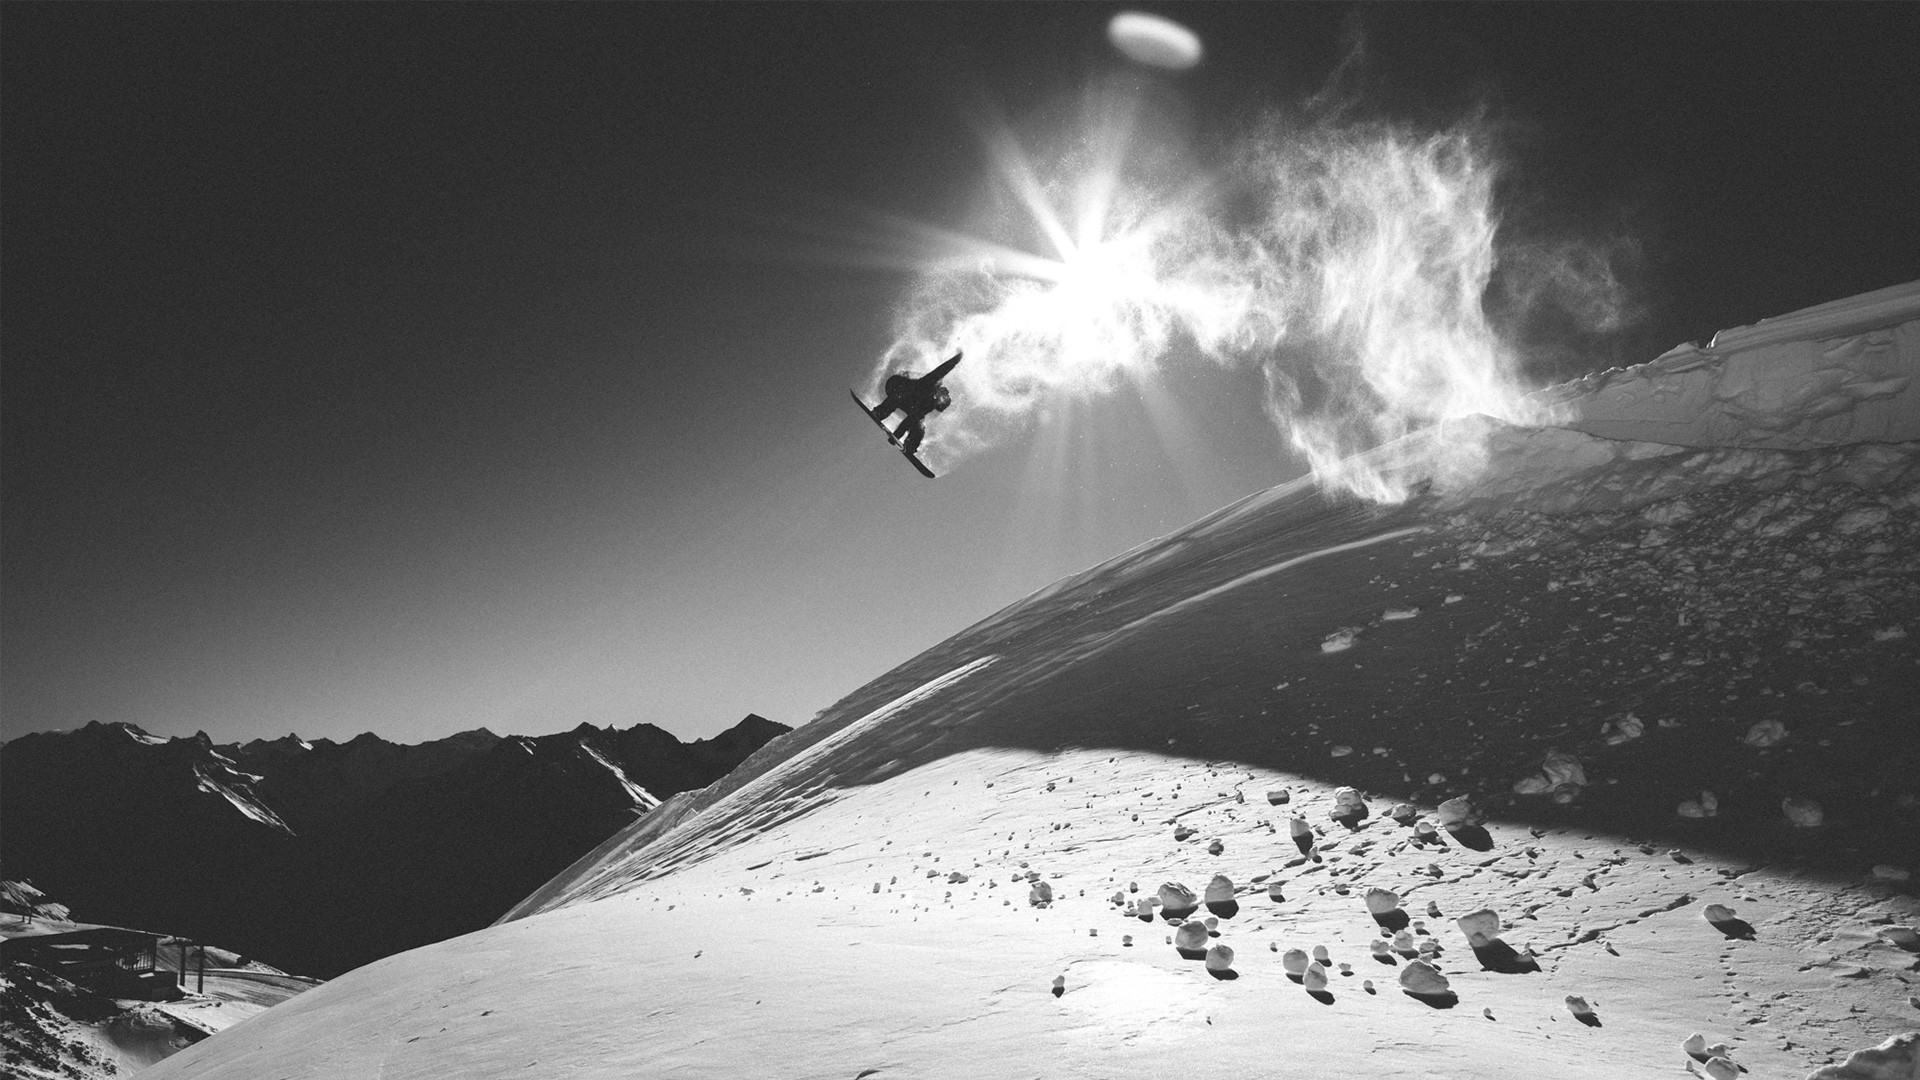 Extreme Hd Wallpapers: Extreme Snowboarding Wallpapers (62+ Images